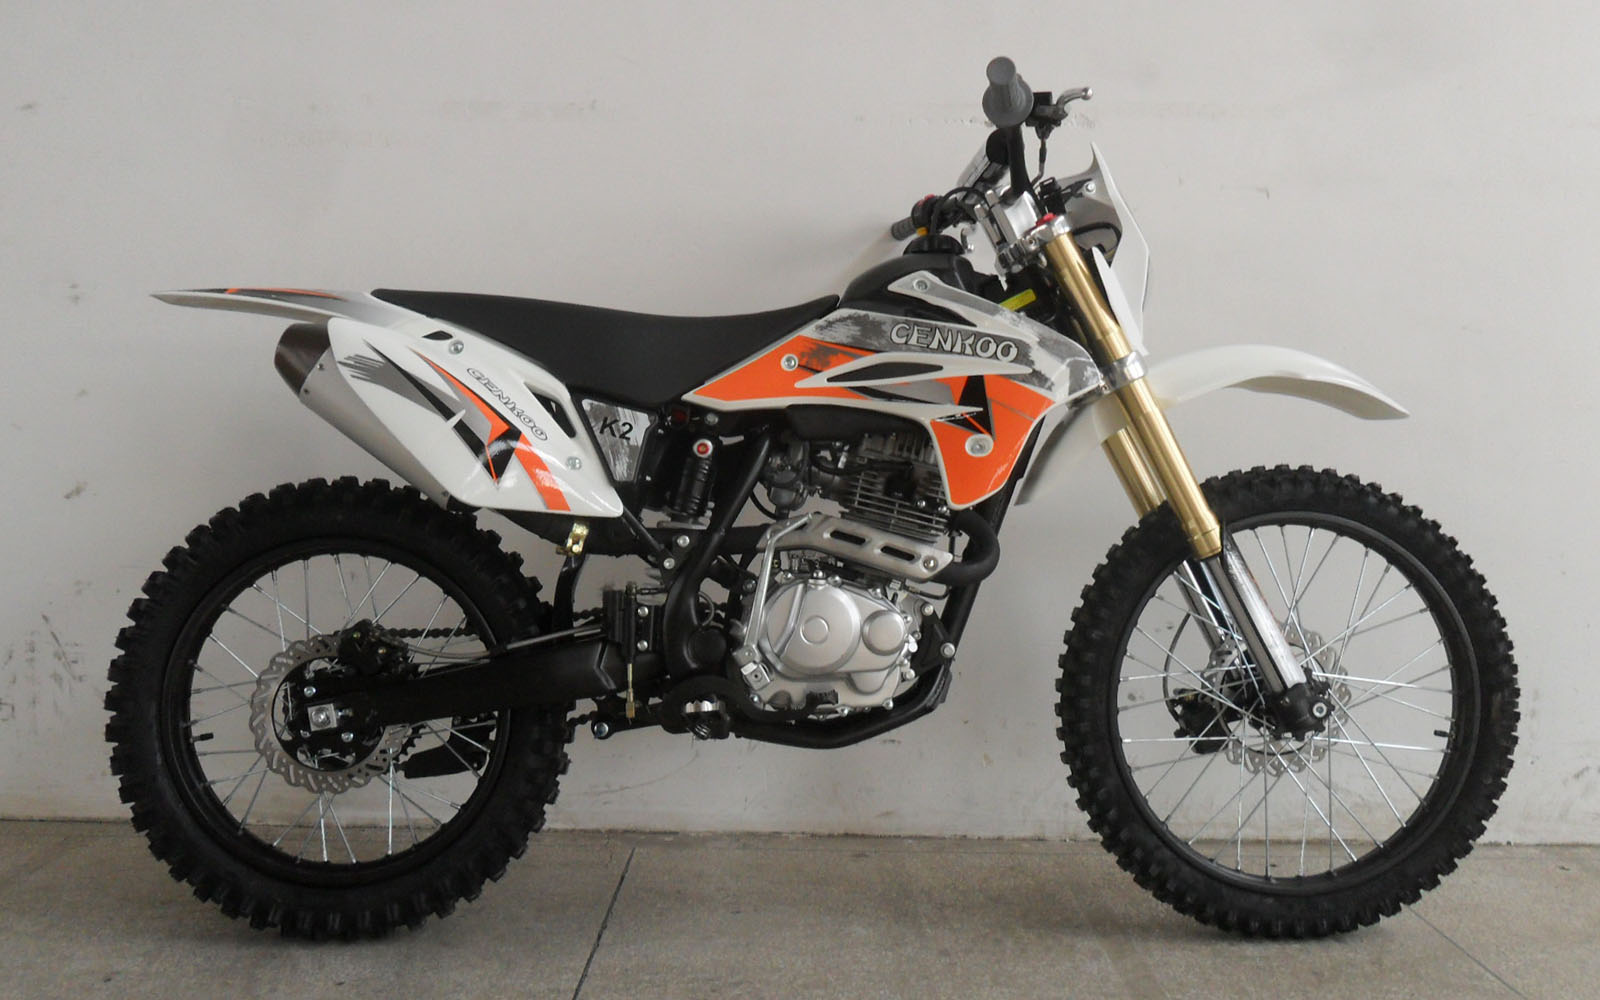 cenkoo k2 250cc 21 18 enduro motocross dirt bike white ebay. Black Bedroom Furniture Sets. Home Design Ideas